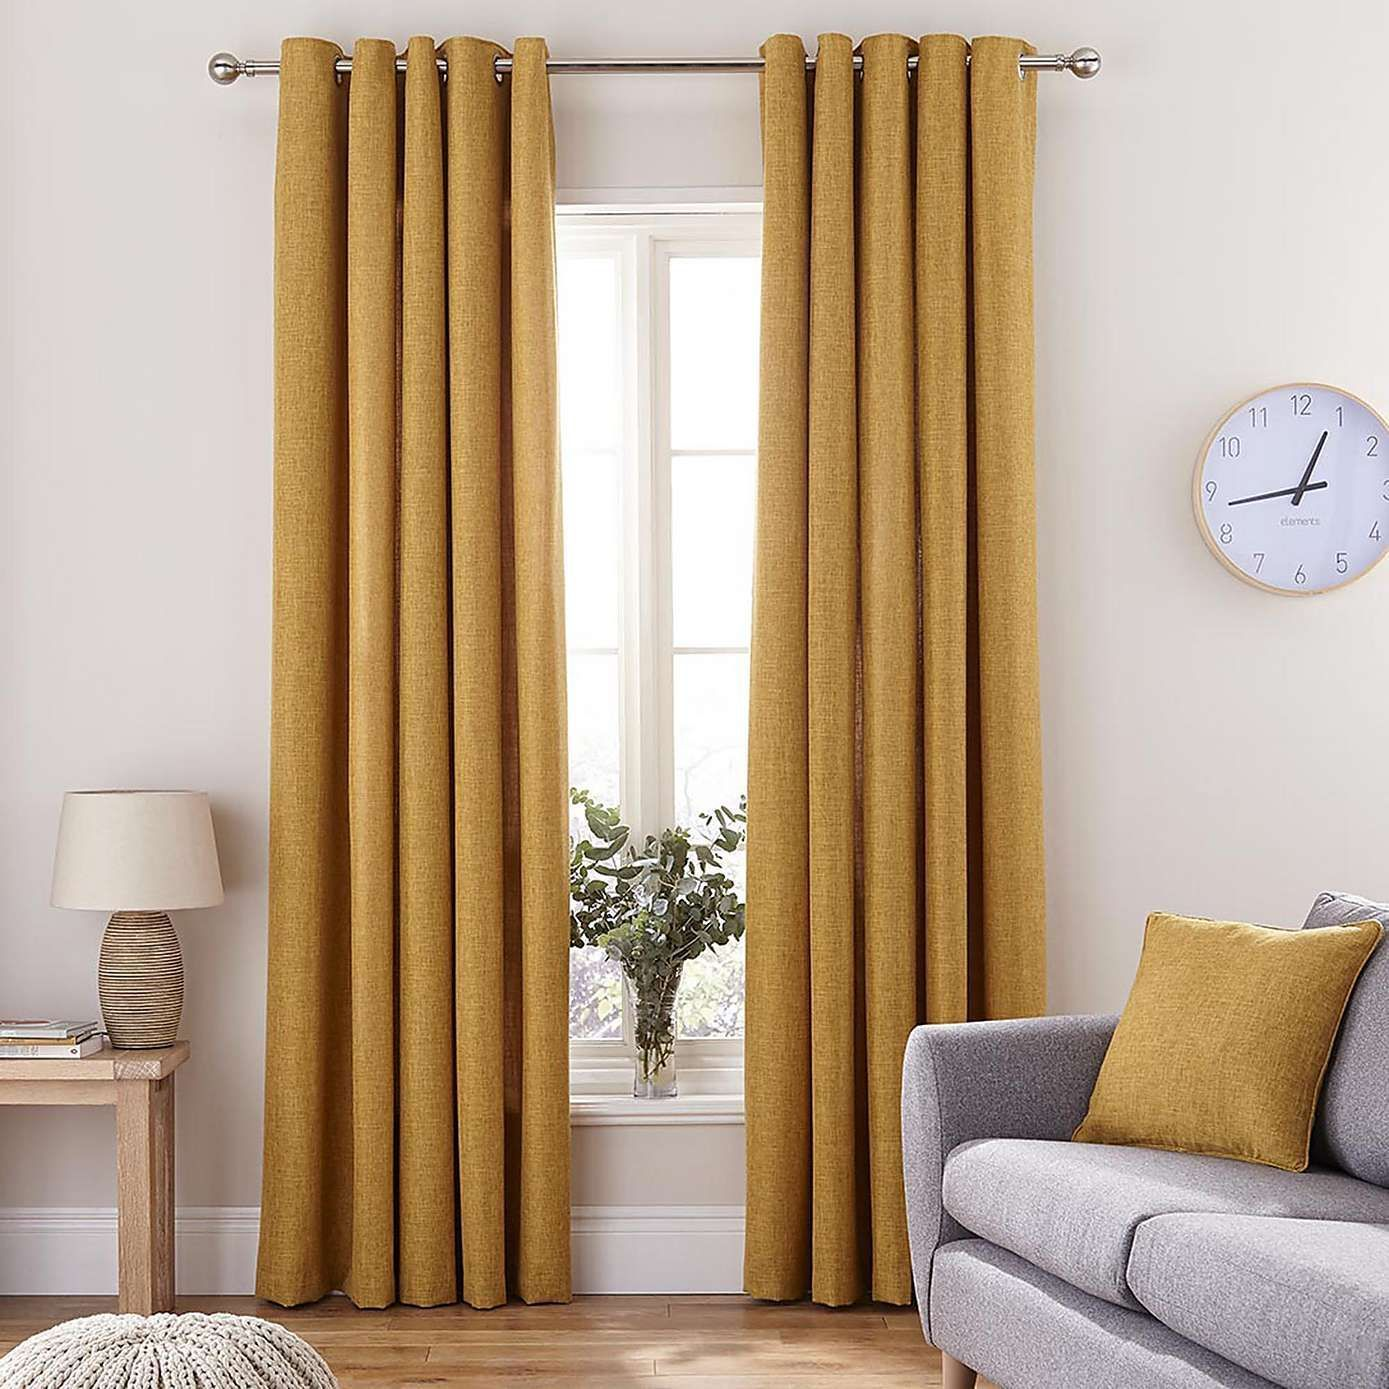 53 Living Room Curtain Ideas To Upgrade Your Interior Insta